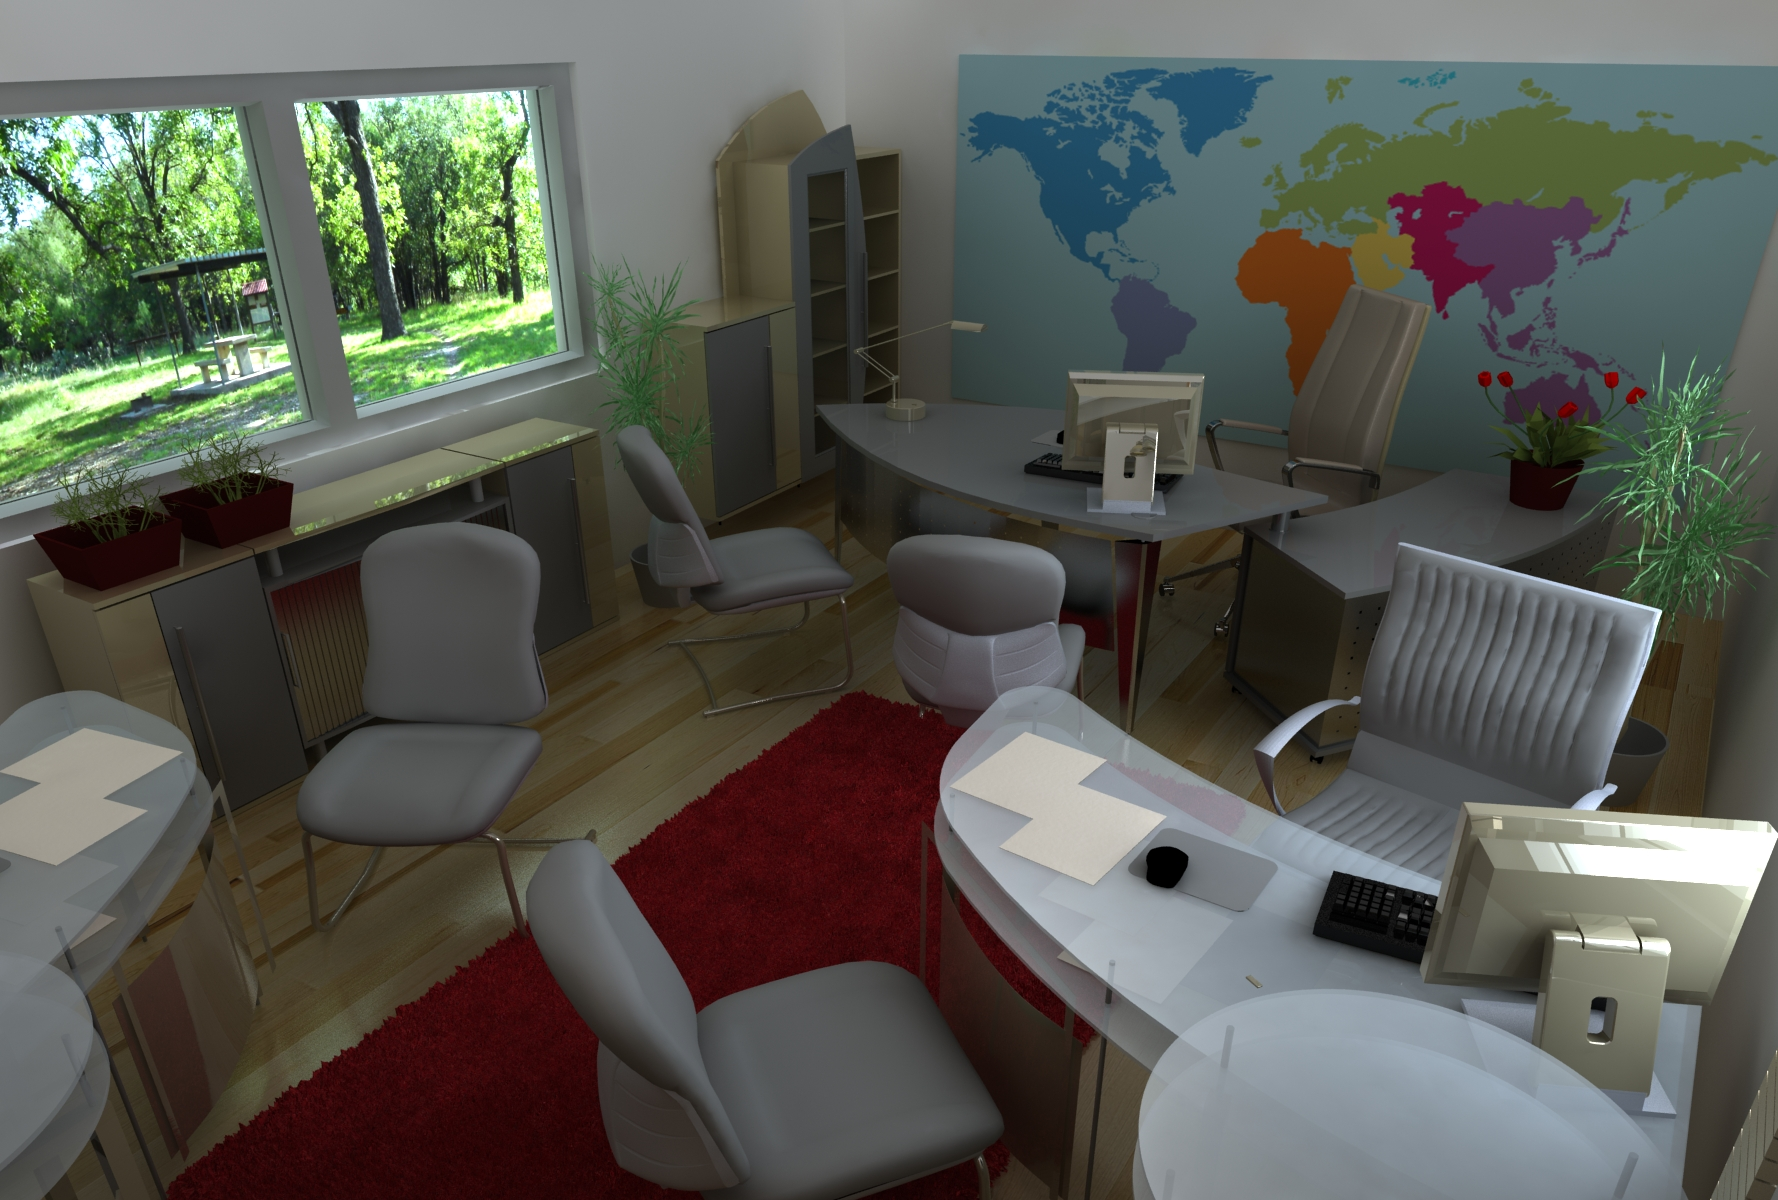 Travel Agency Interior Design Var 2 QView Full Size